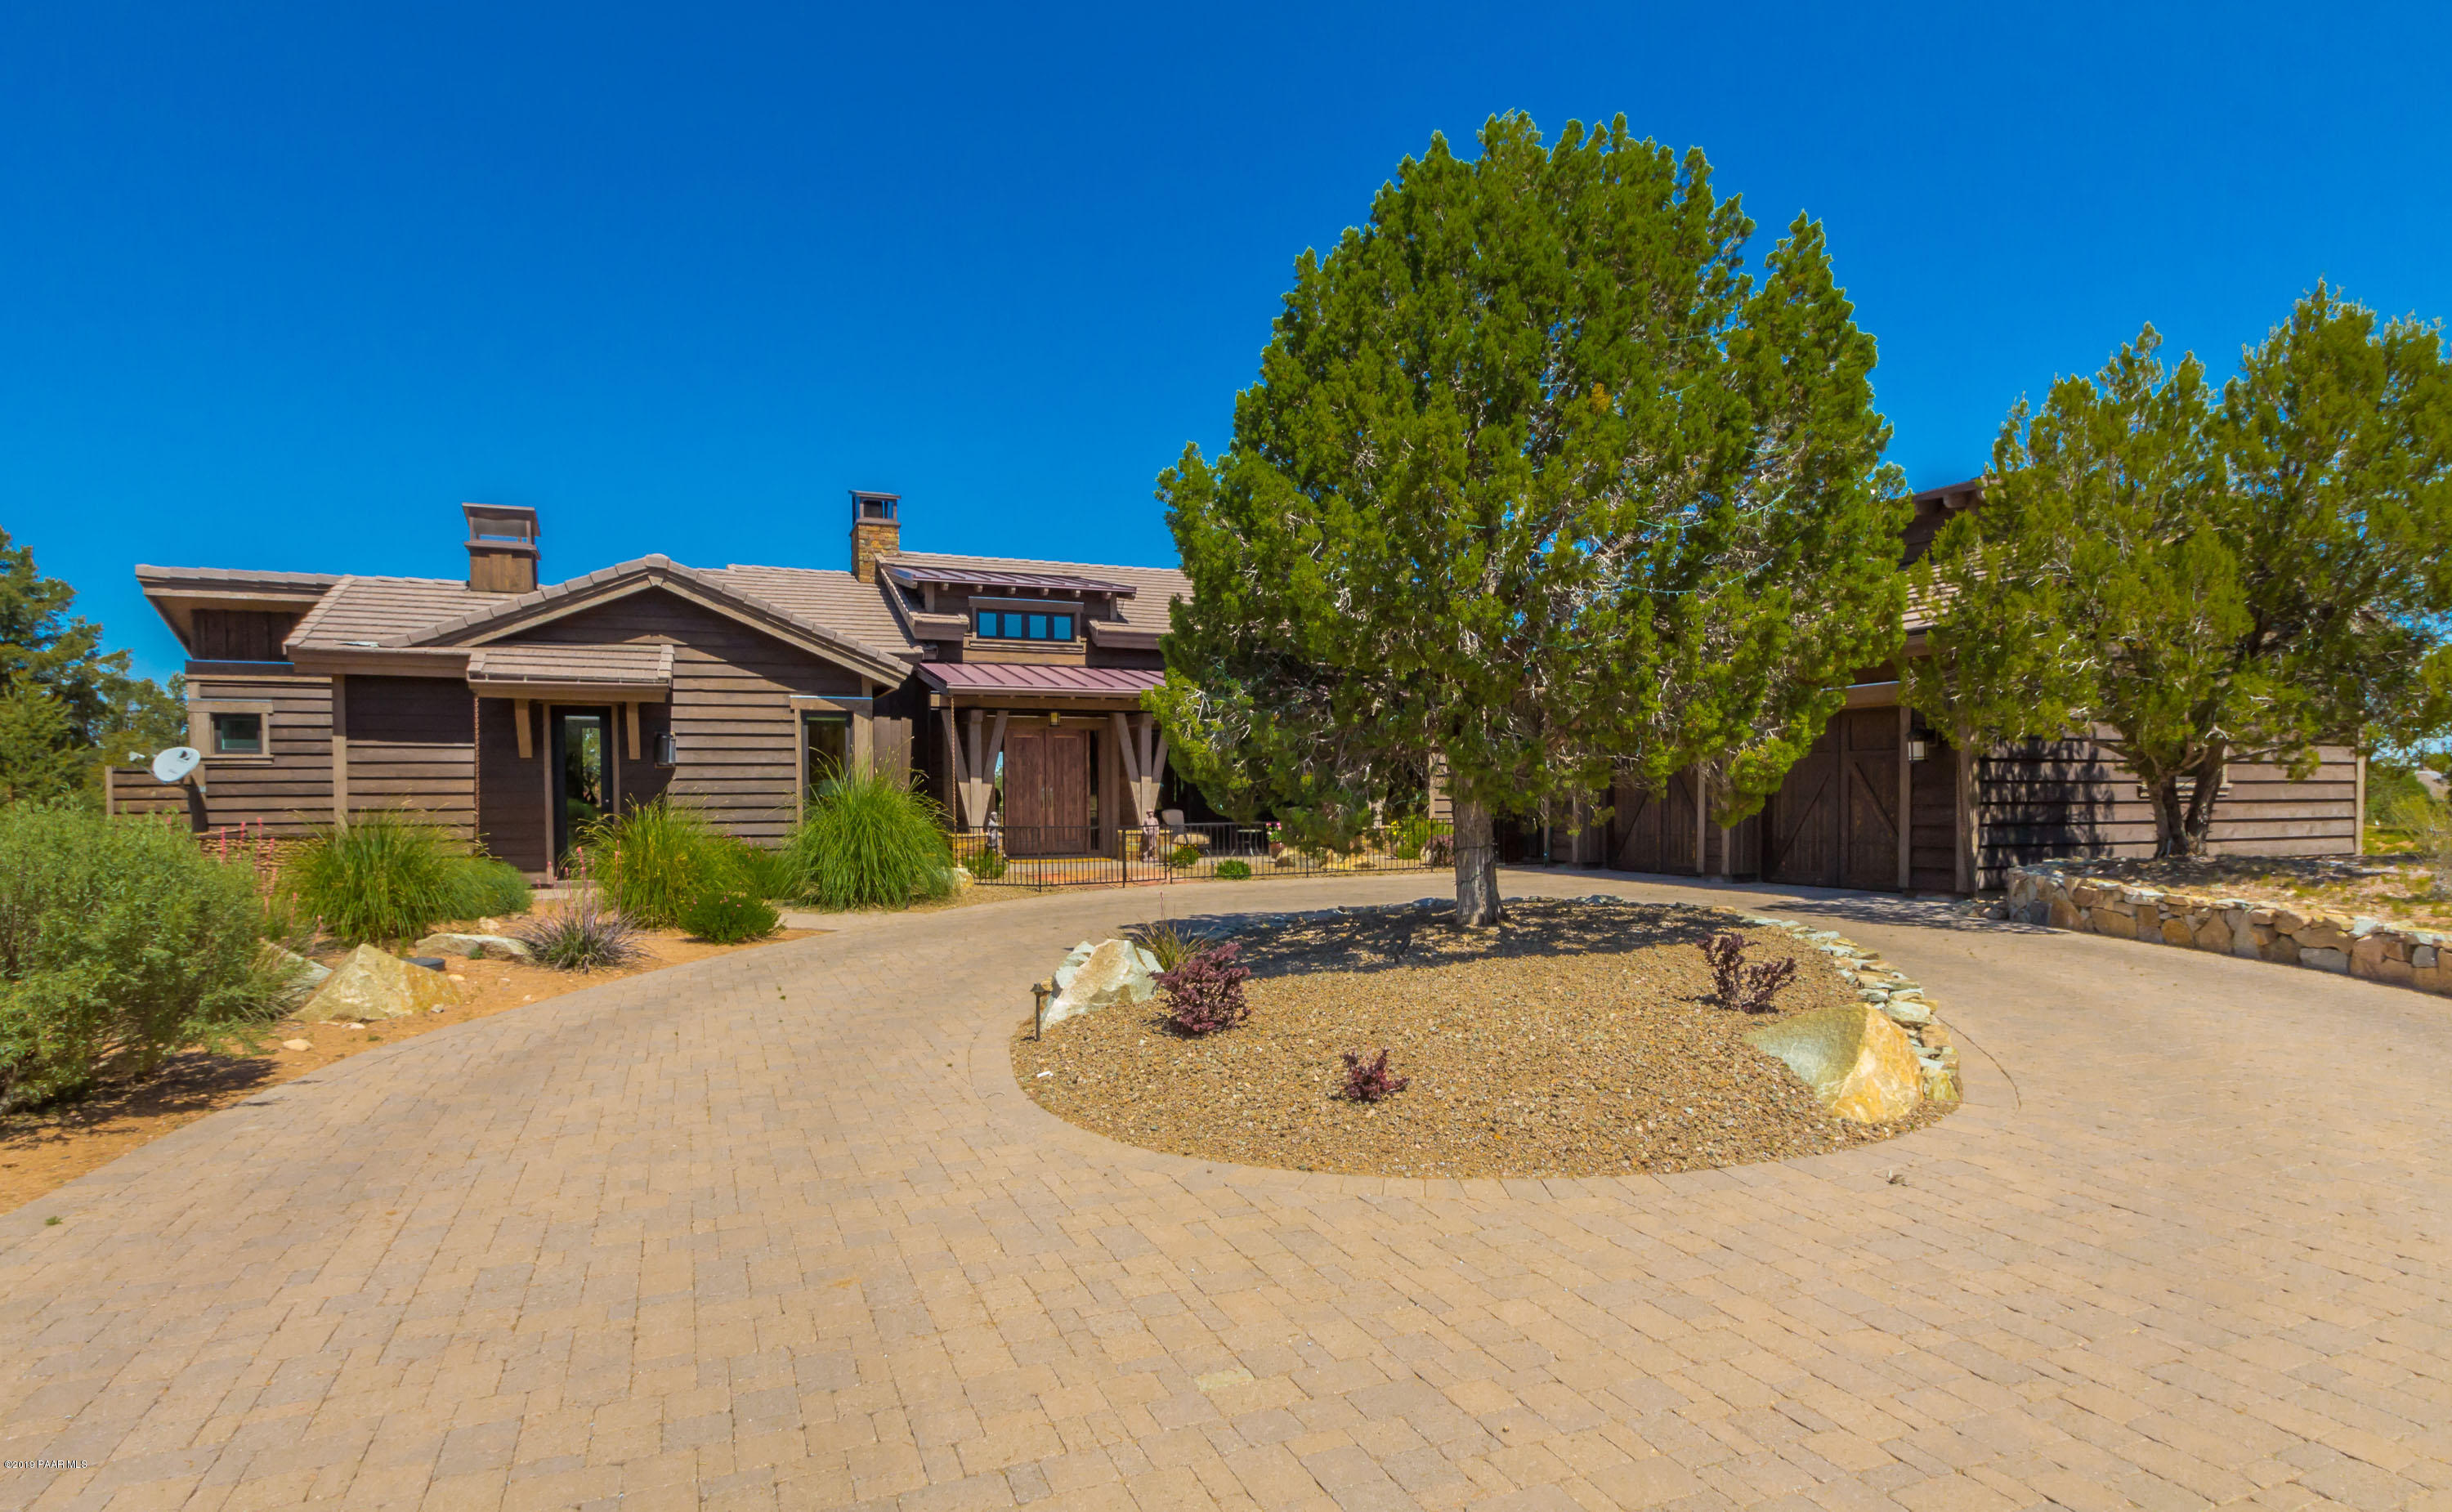 5310 W Vengeance Trail, Prescott, Arizona